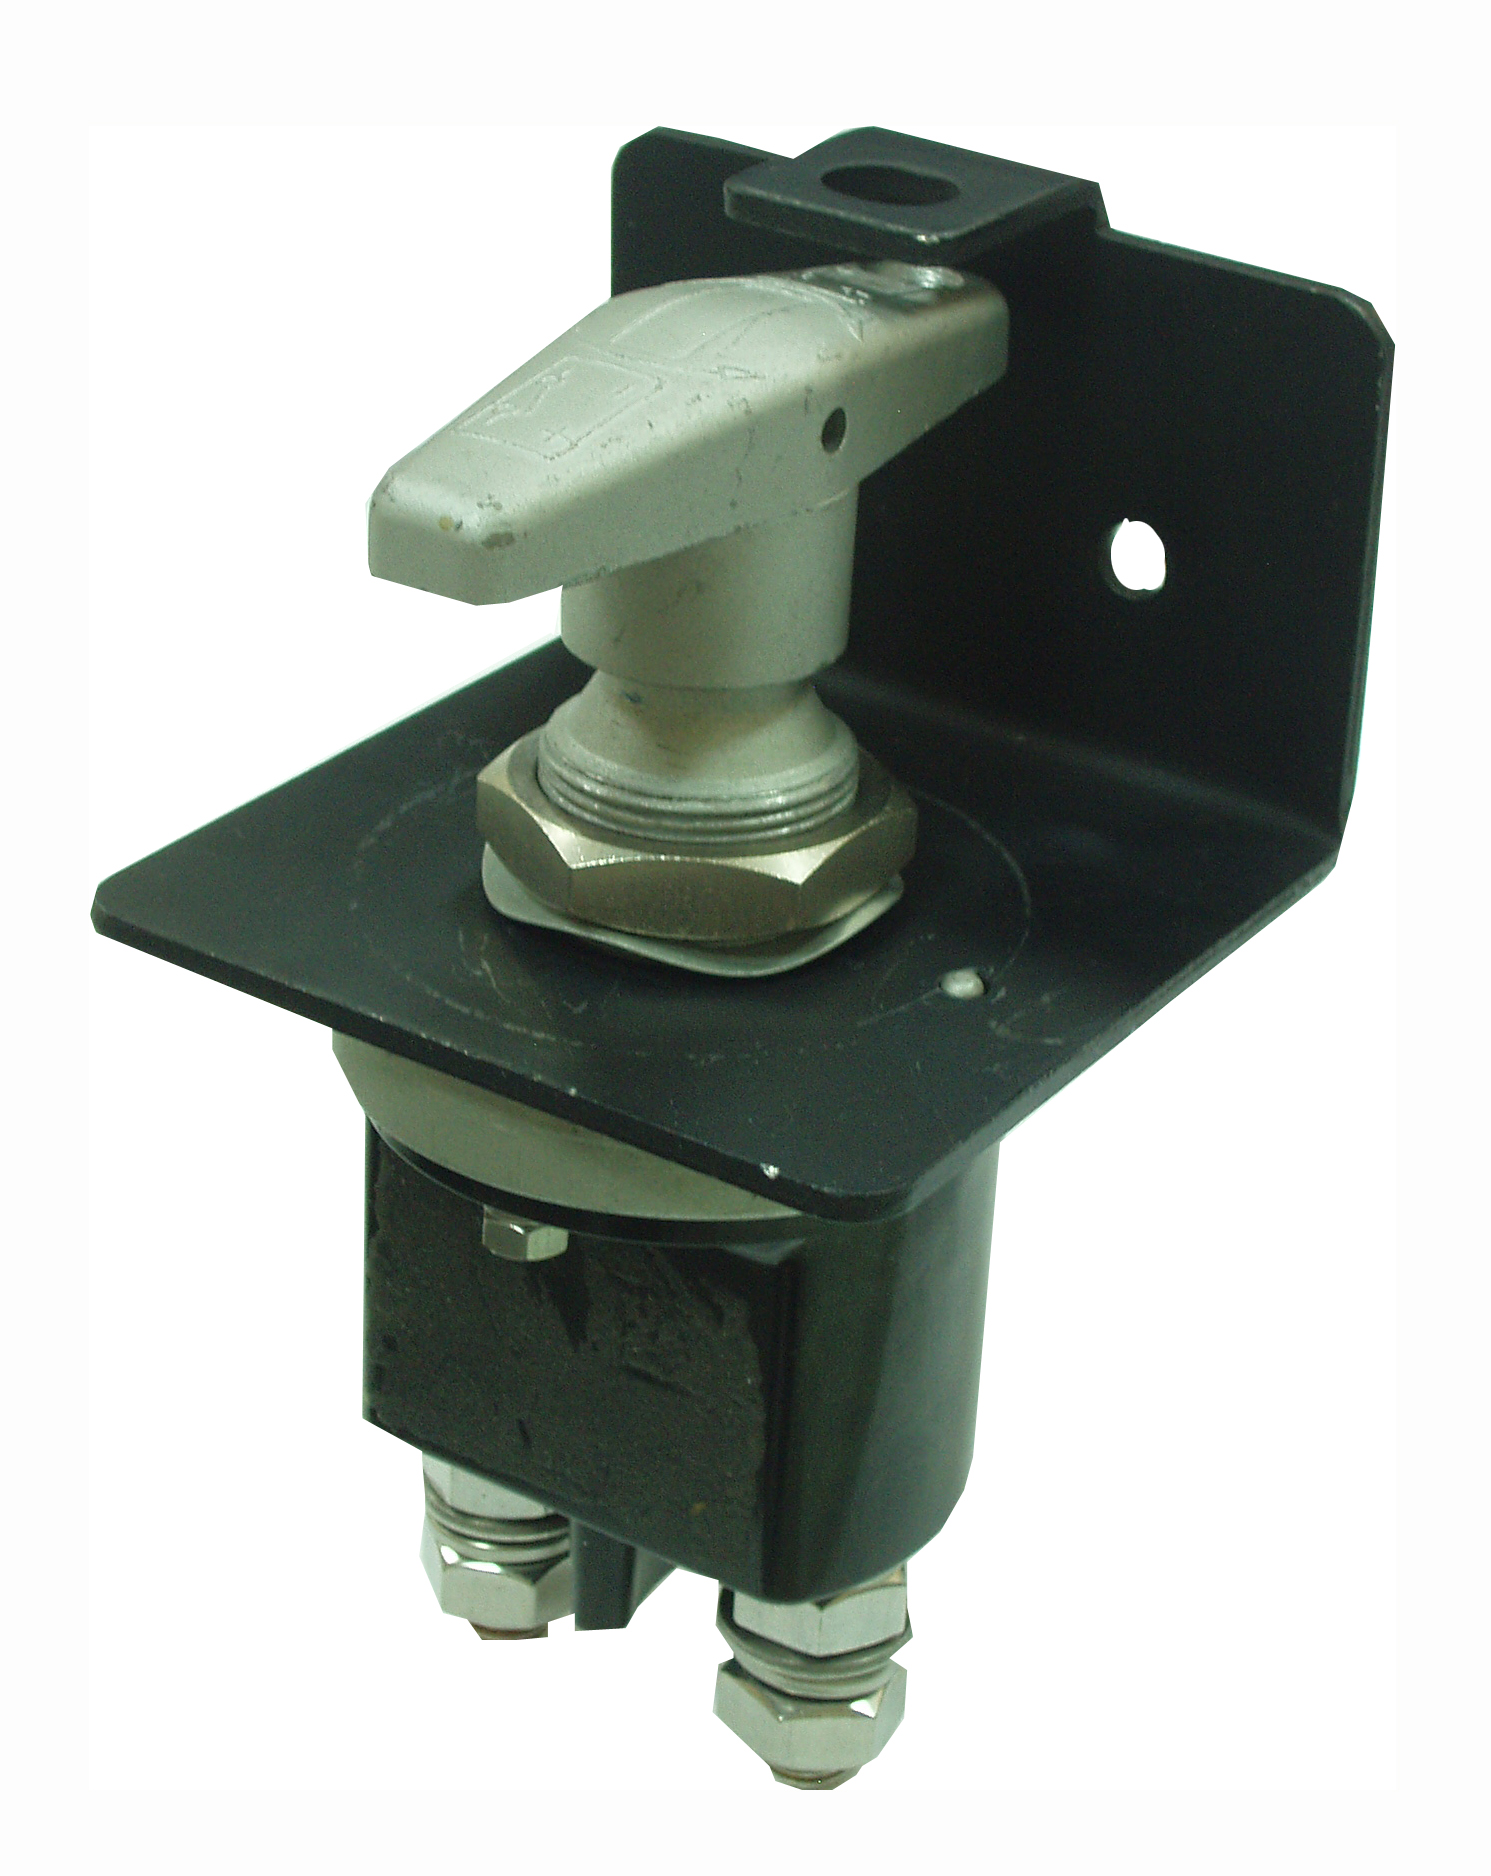 WirthCo 20247 Battery Doctor Fixed Handle Isolator Disconnect Switch with Lock-Out Plate